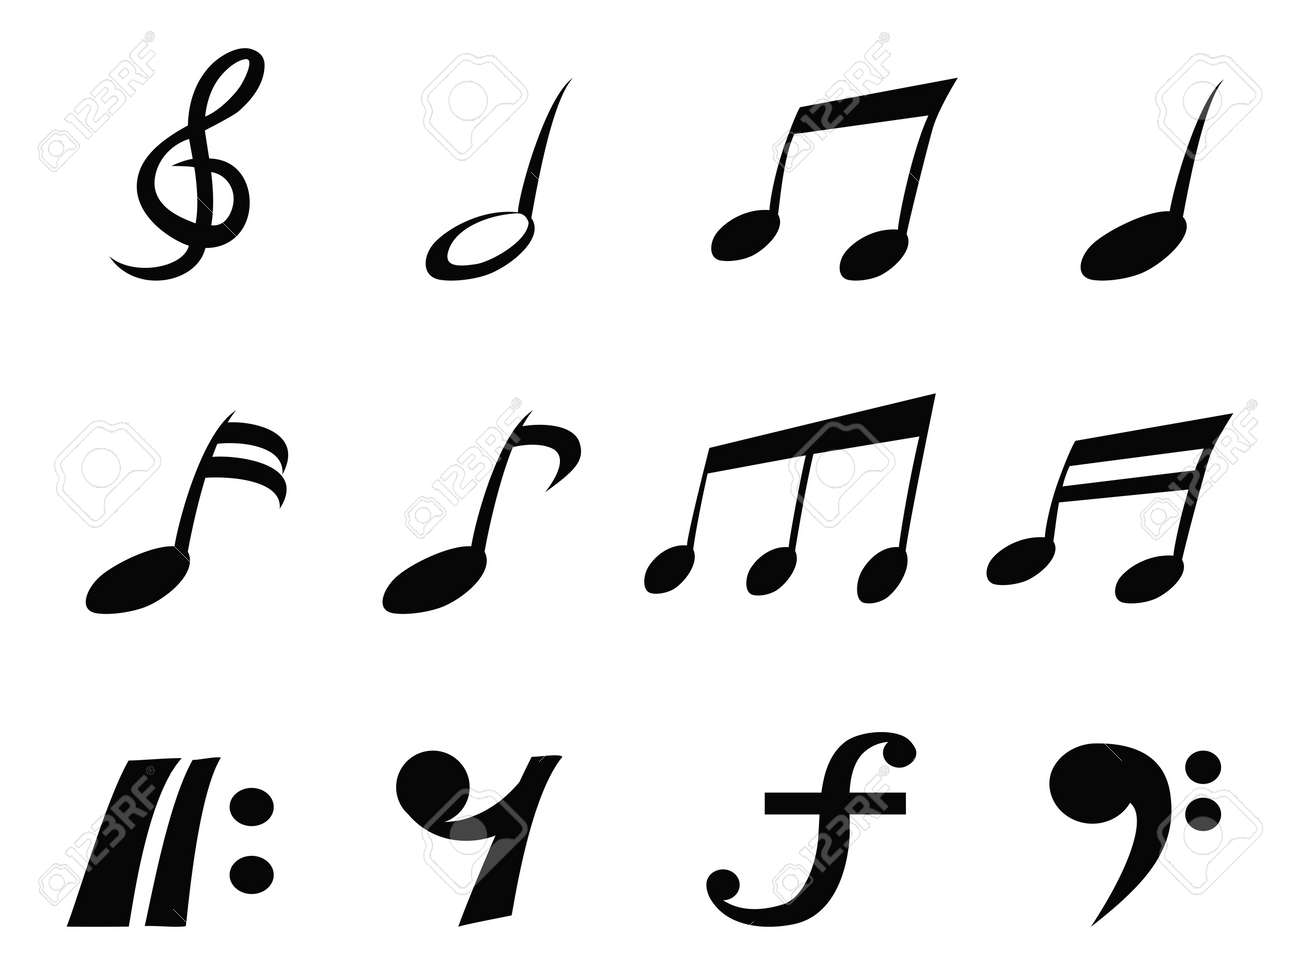 Isolated music note icons from white background royalty free isolated music note icons from white background stock vector 24539758 buycottarizona